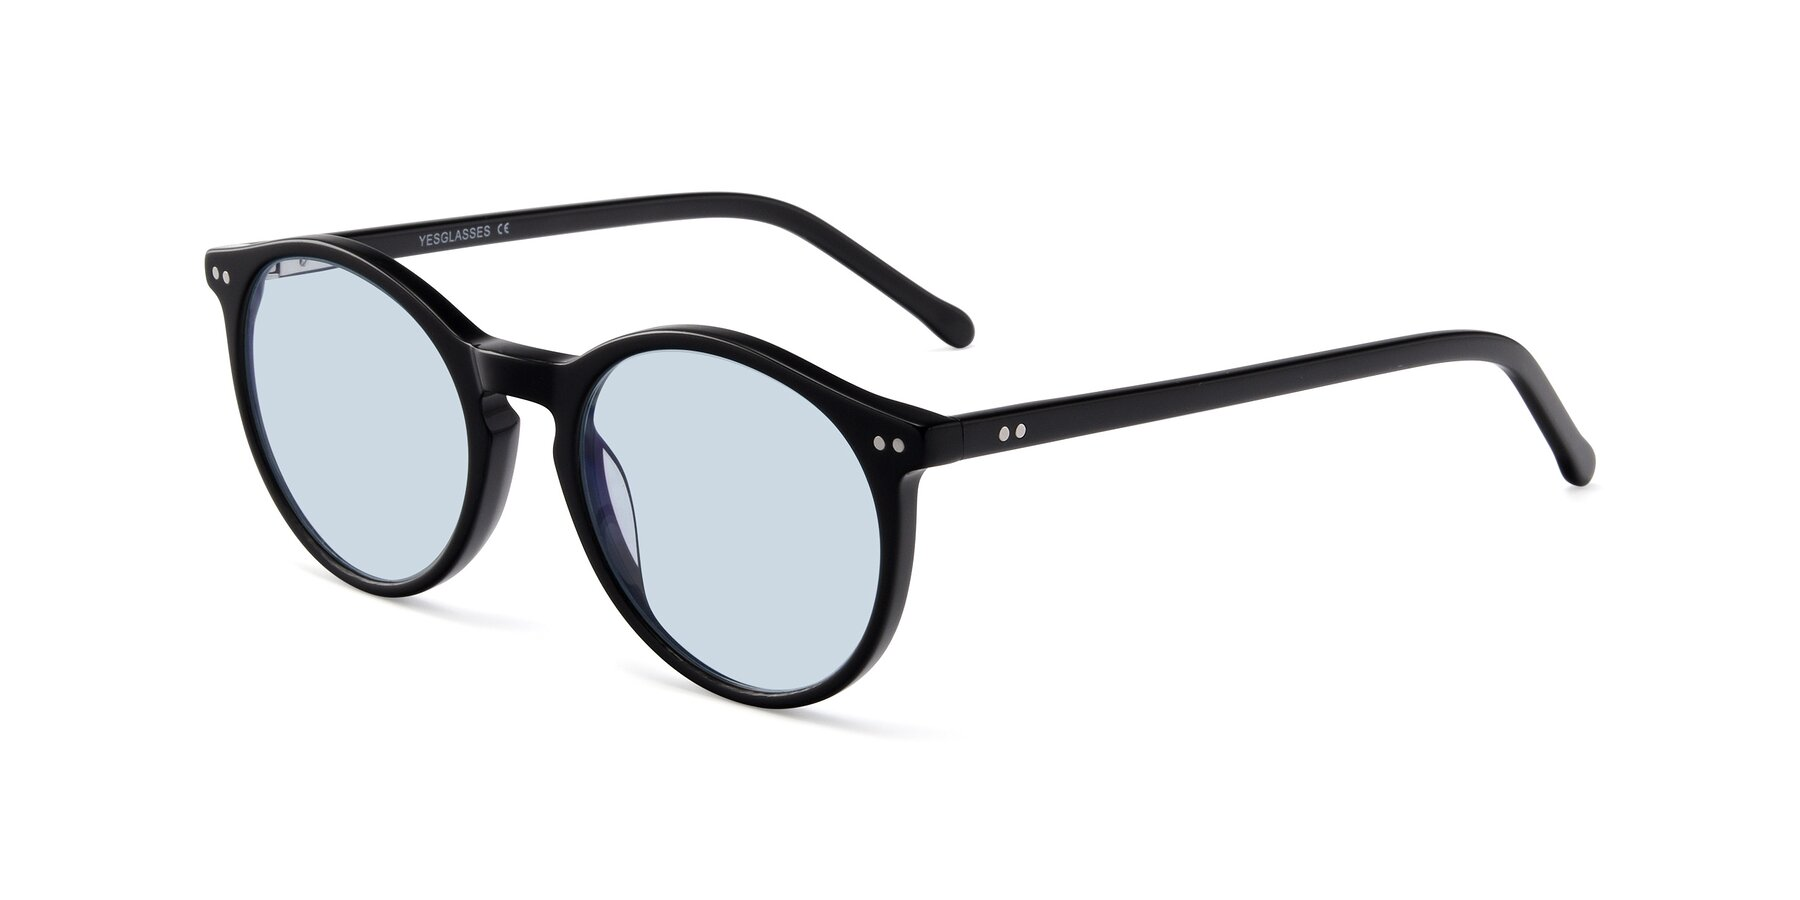 Angle of JS9026A in Black with Light Blue Tinted Lenses